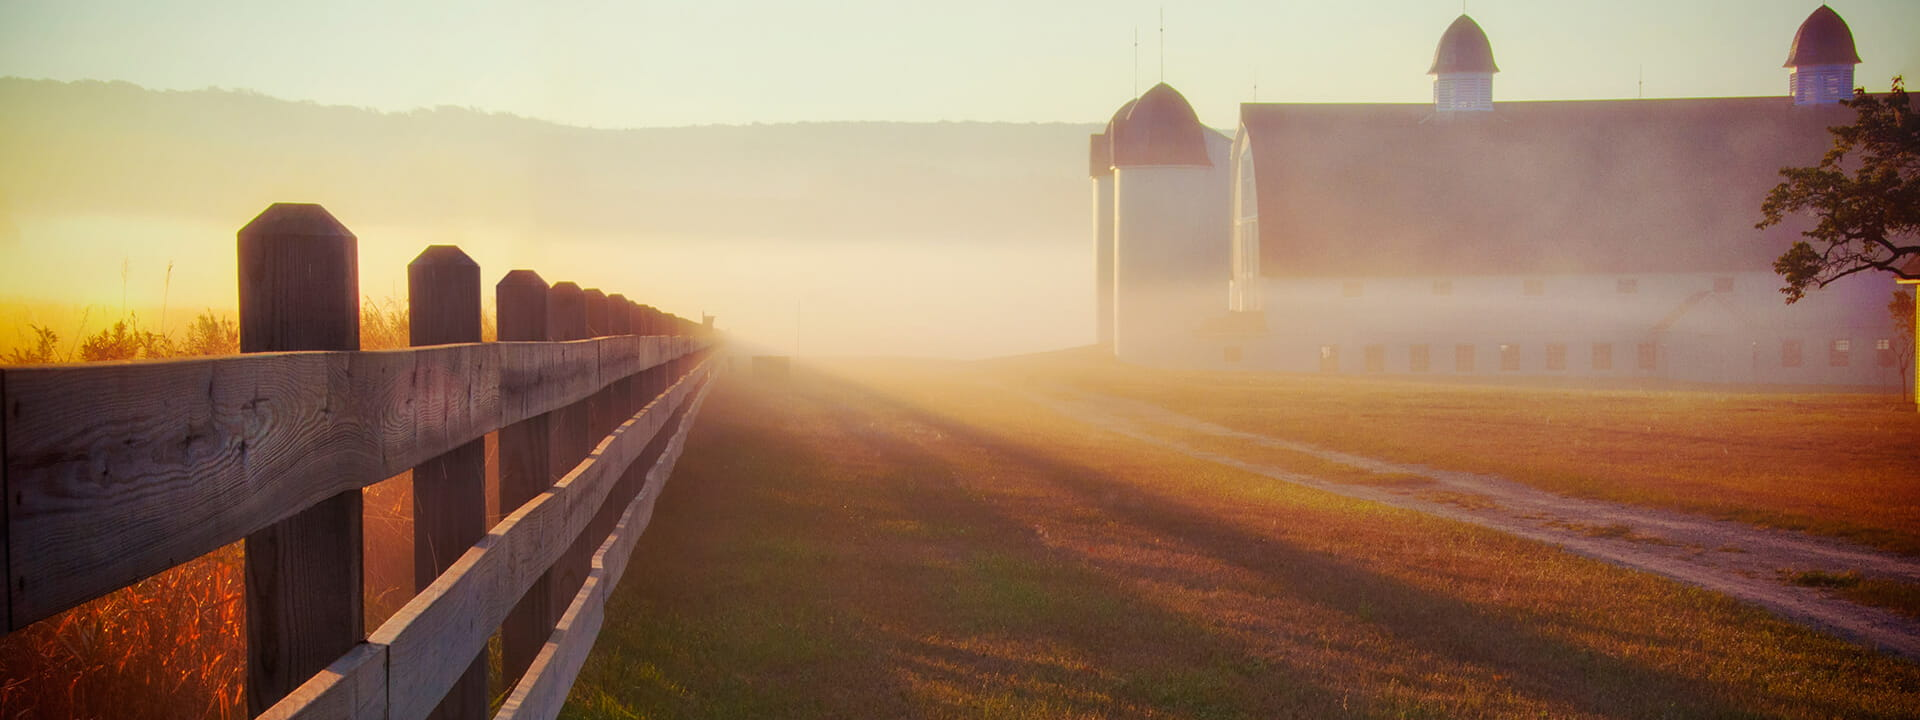 A hazy morning on a mid-west farm.